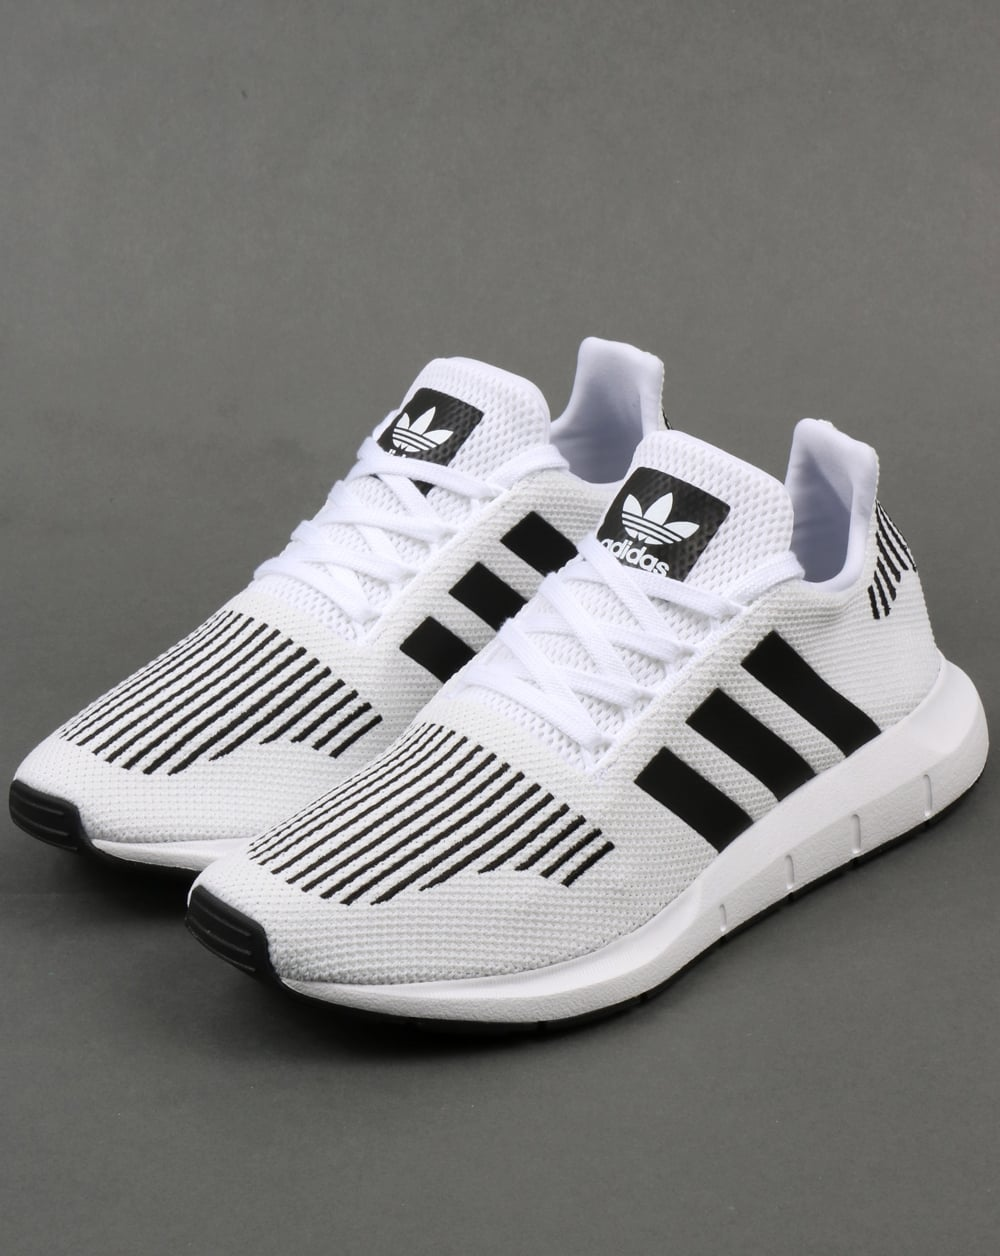 55b368c11aa58 Adidas Swift Run Trainers White Black Grey